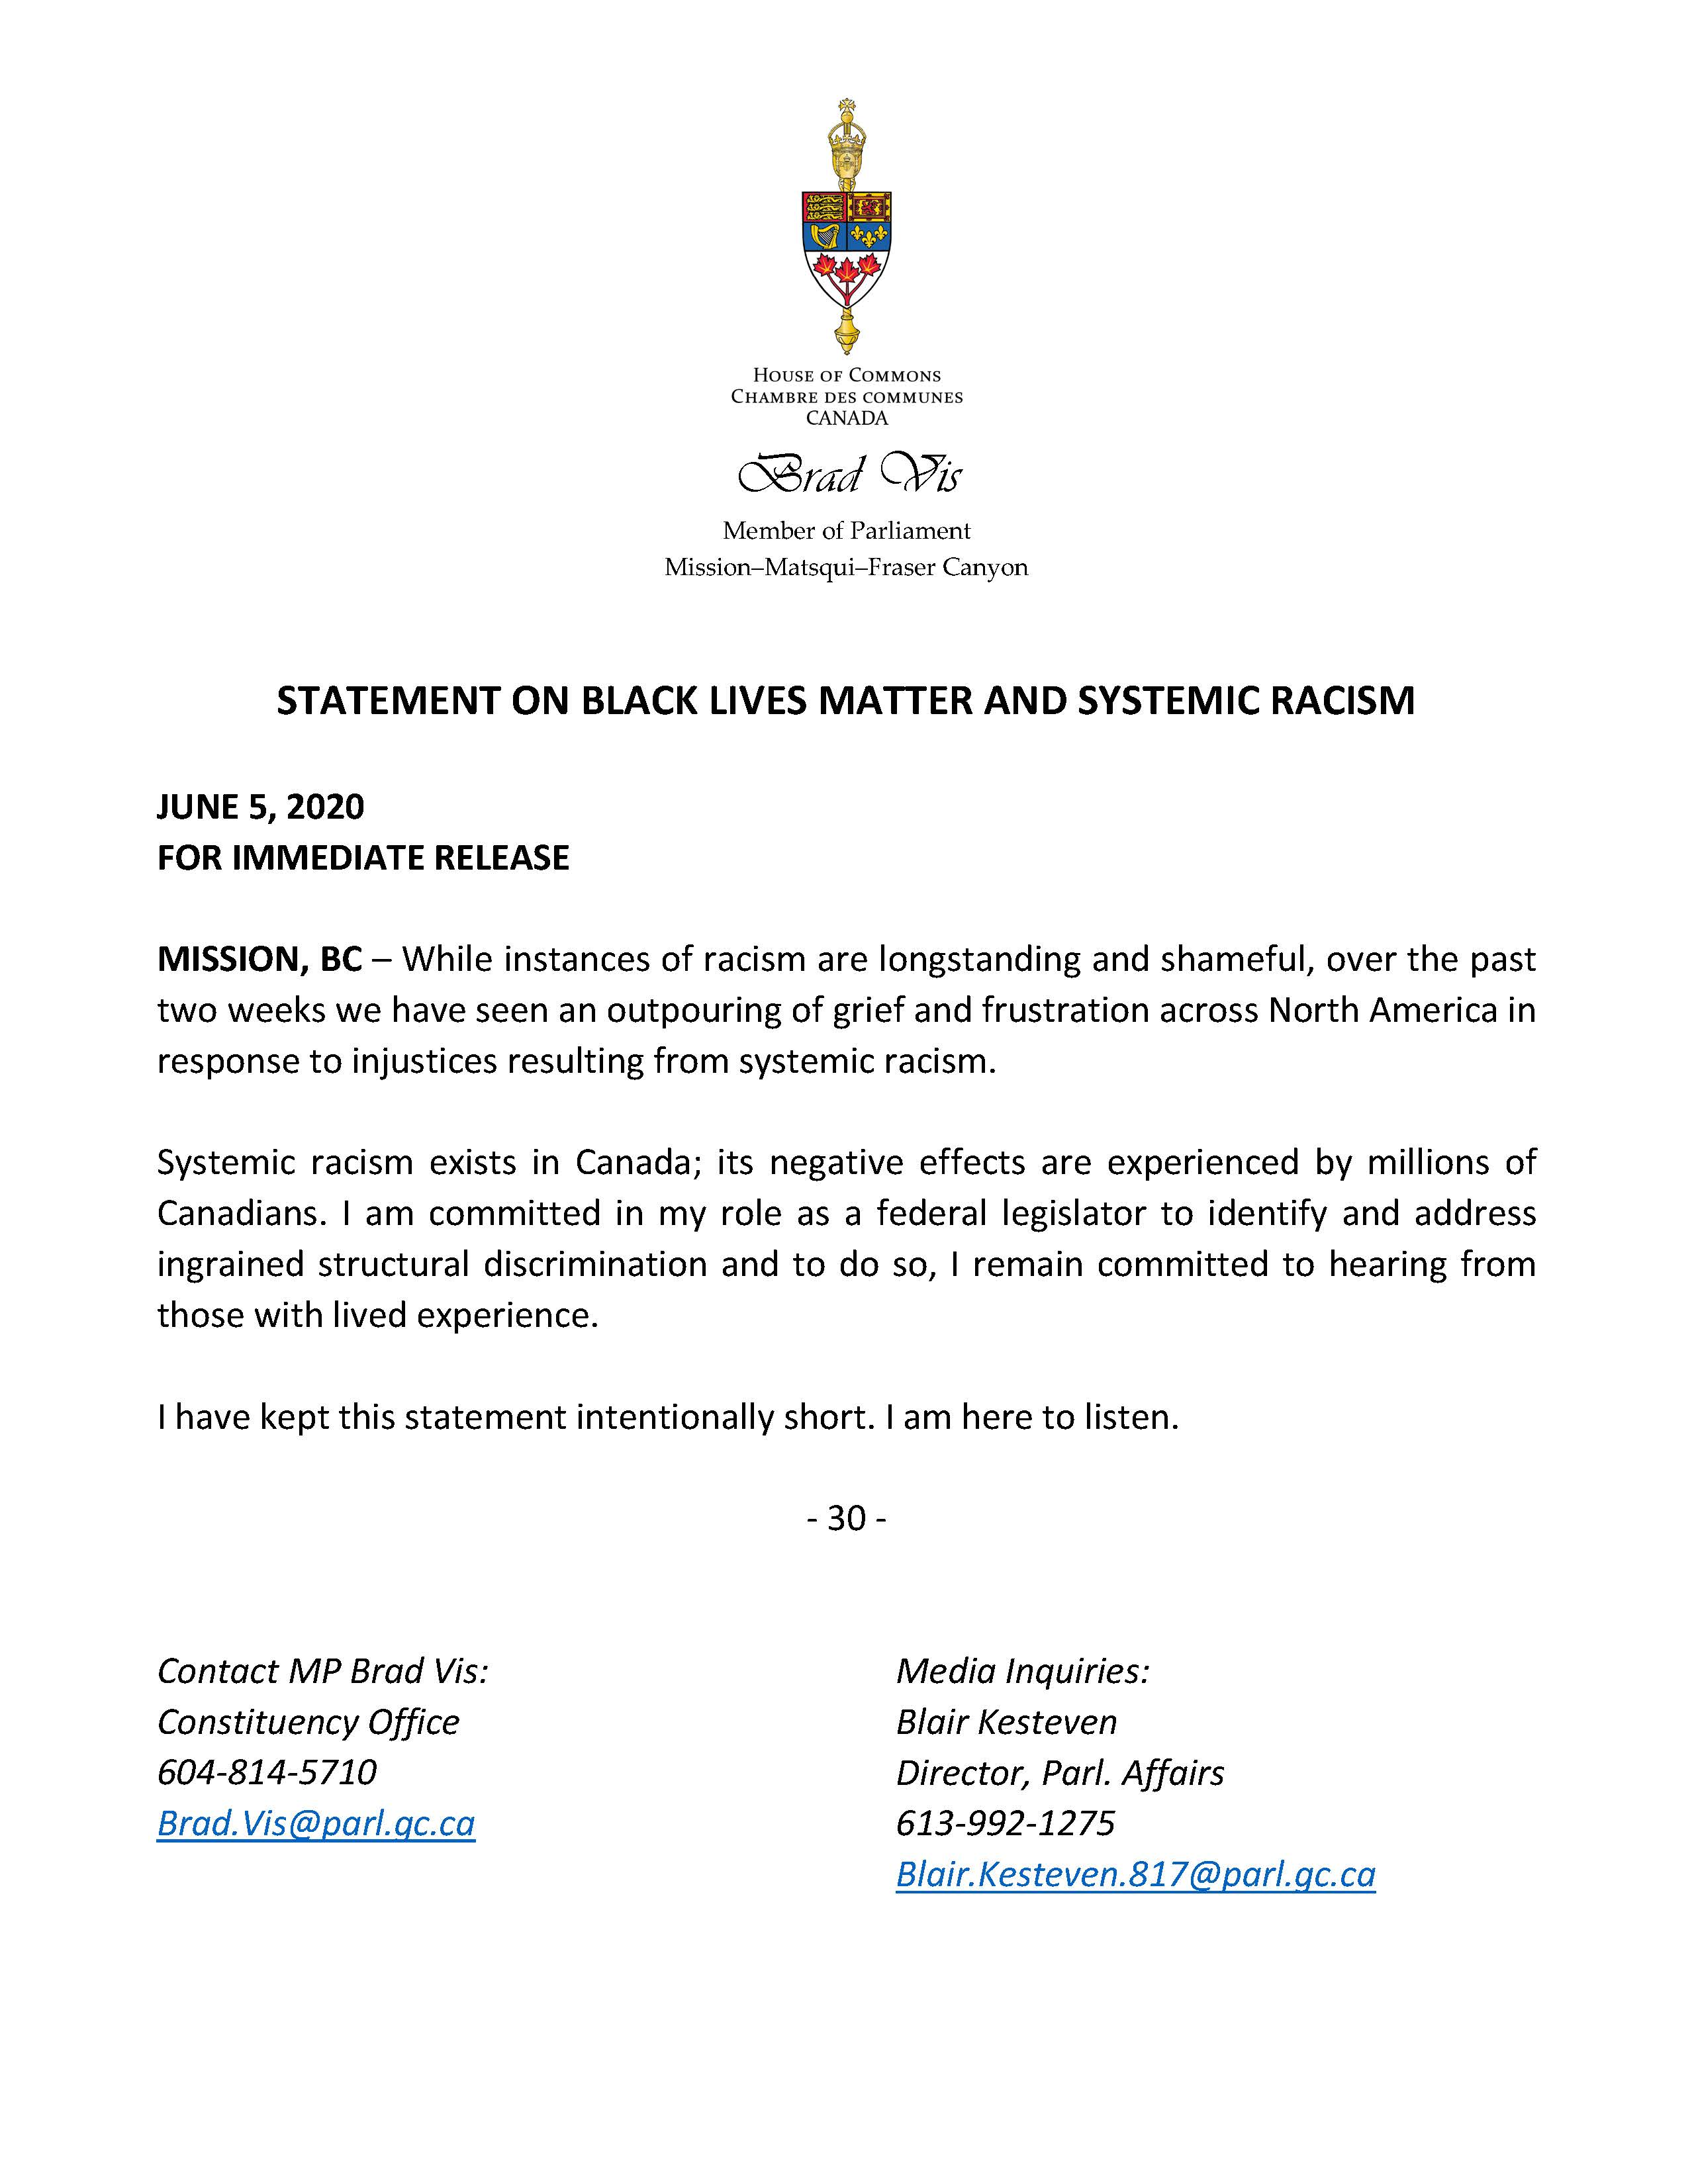 Statement on Black Lives Matter and Systemic Racism